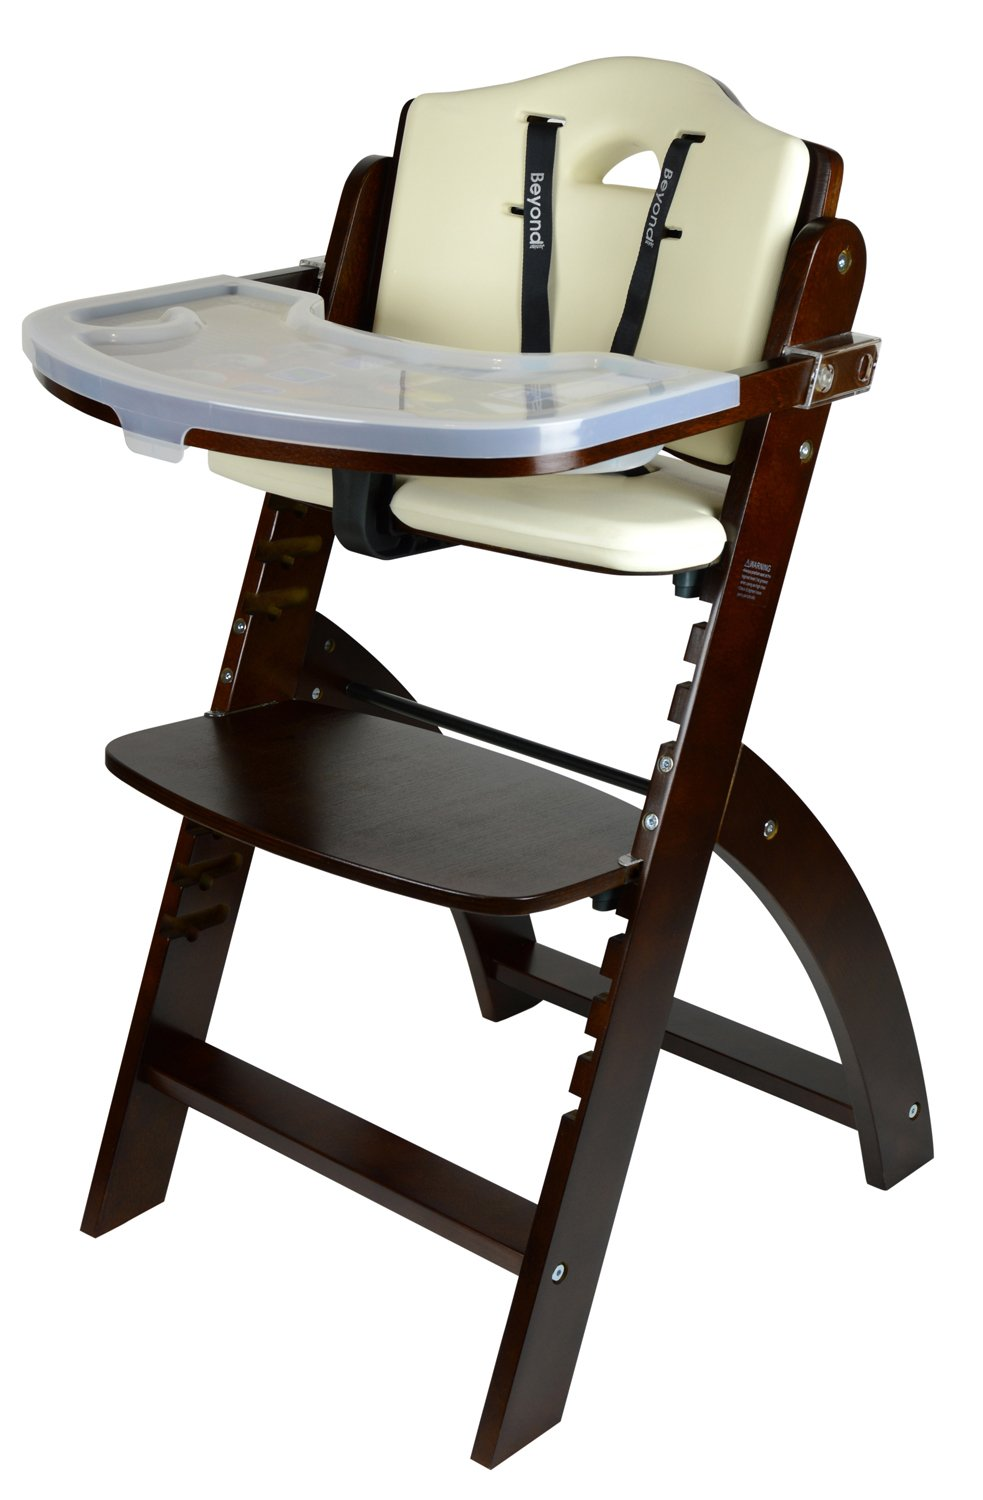 Beyond Junior Y Series High Chair, Mahogany/Cream White Abiie 101010021